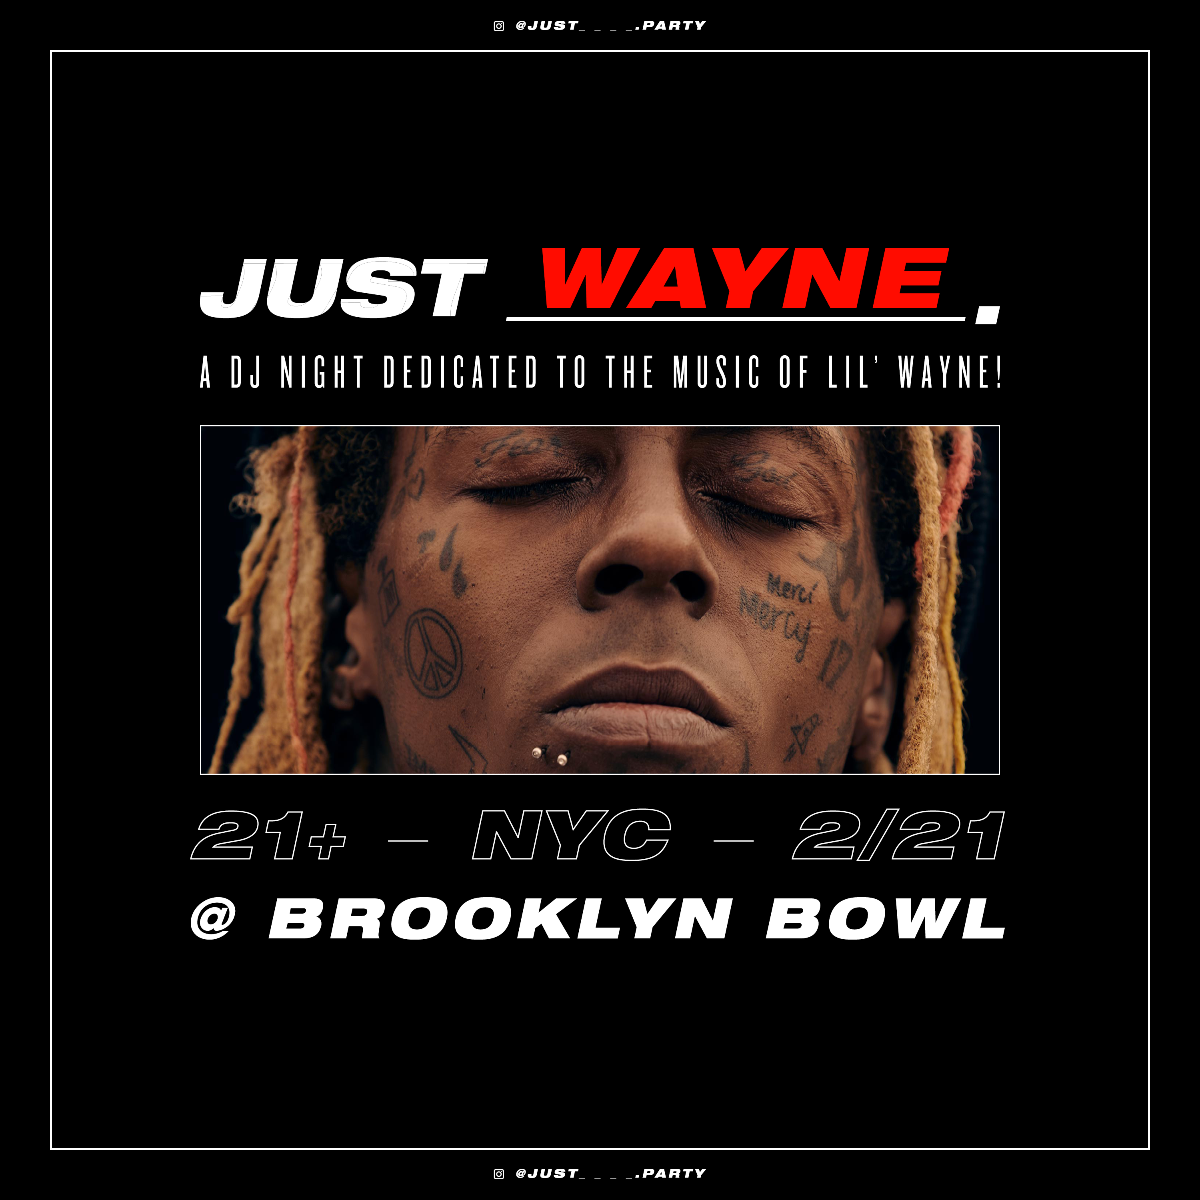 JUST Wayne